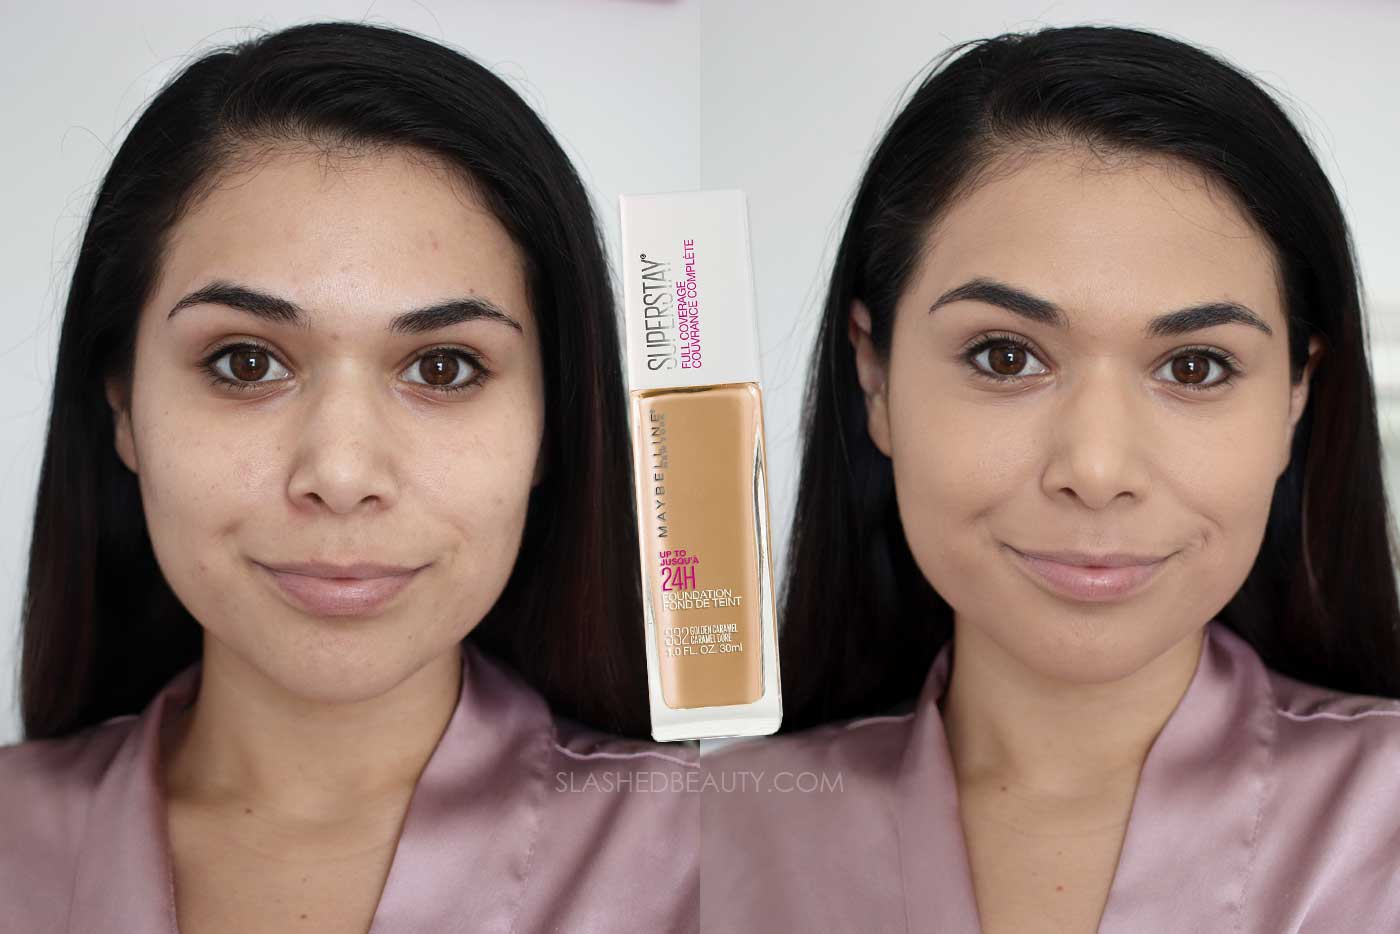 Discover the 4 Best Full Coverage Drugstore Foundations | Maybelline Super Stay Full Coverage Foundation Review Before & After | Slashed Beauty